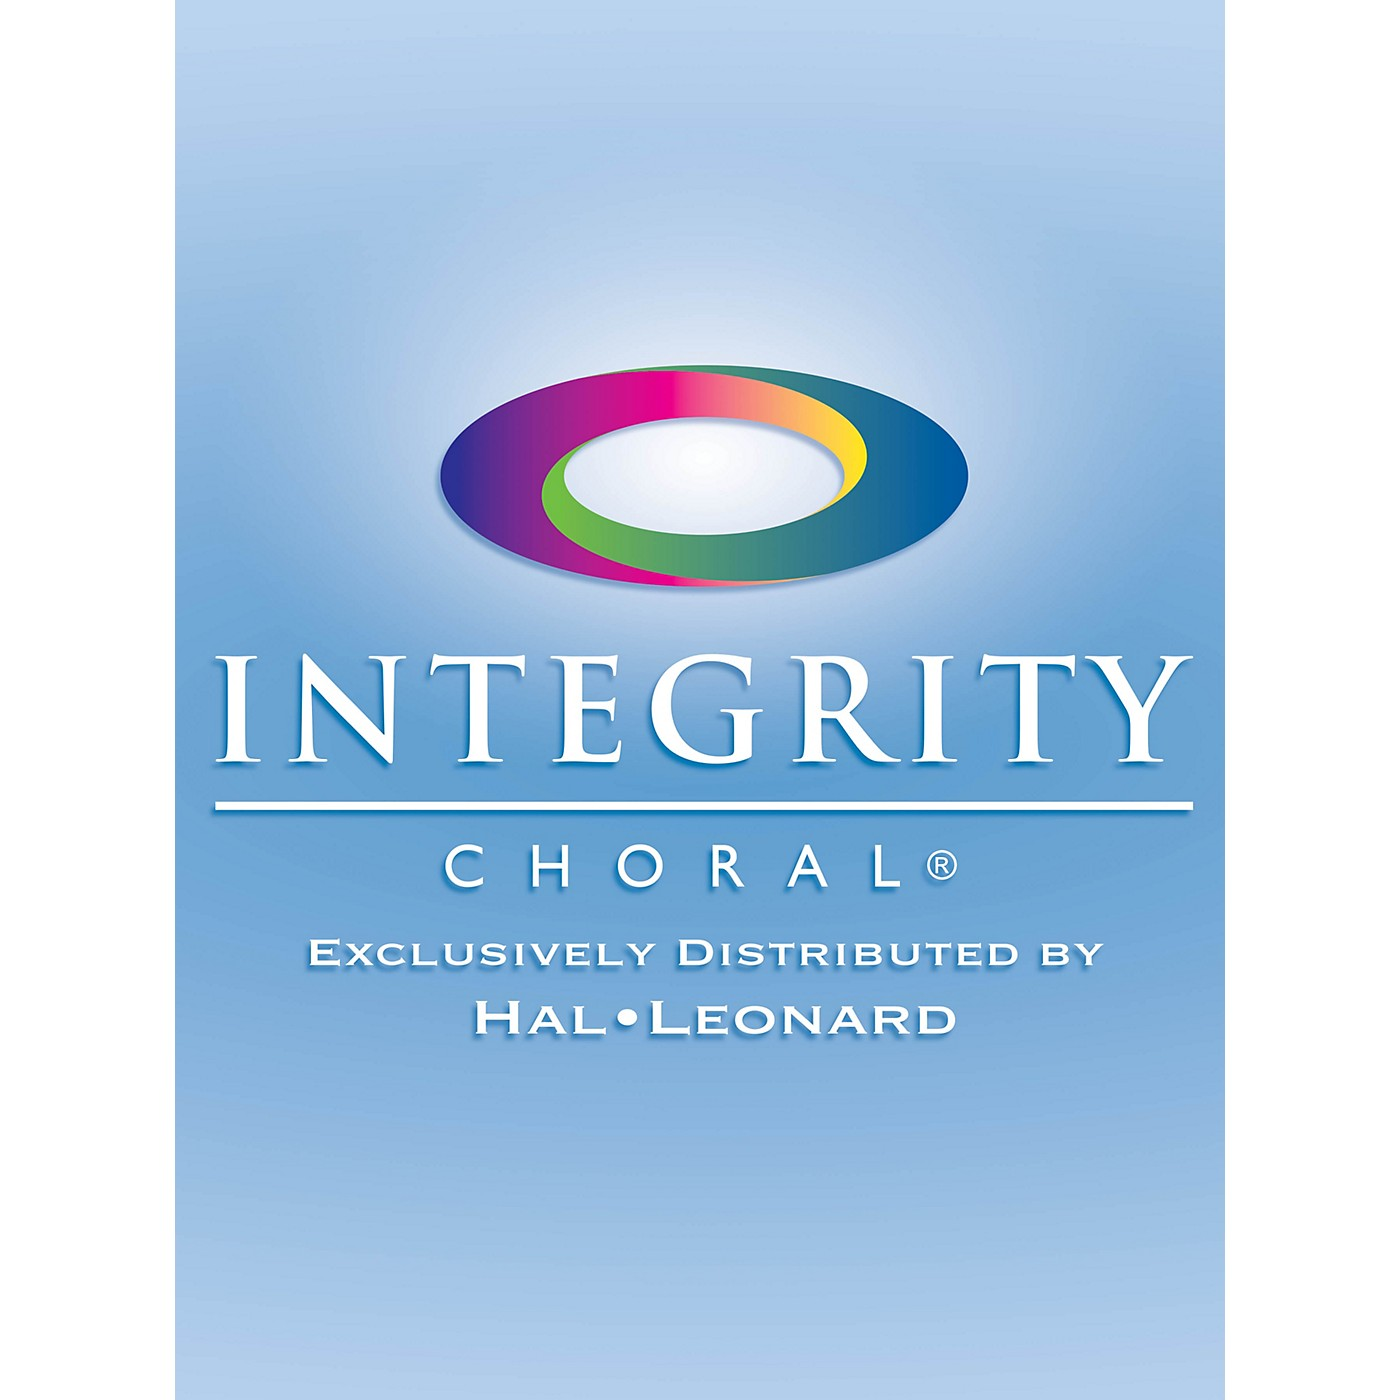 Integrity Music Blessed Be the Lord God Almighty (Forever and Ever) (goes with 08746017) Orchestra by J. Daniel Smith thumbnail